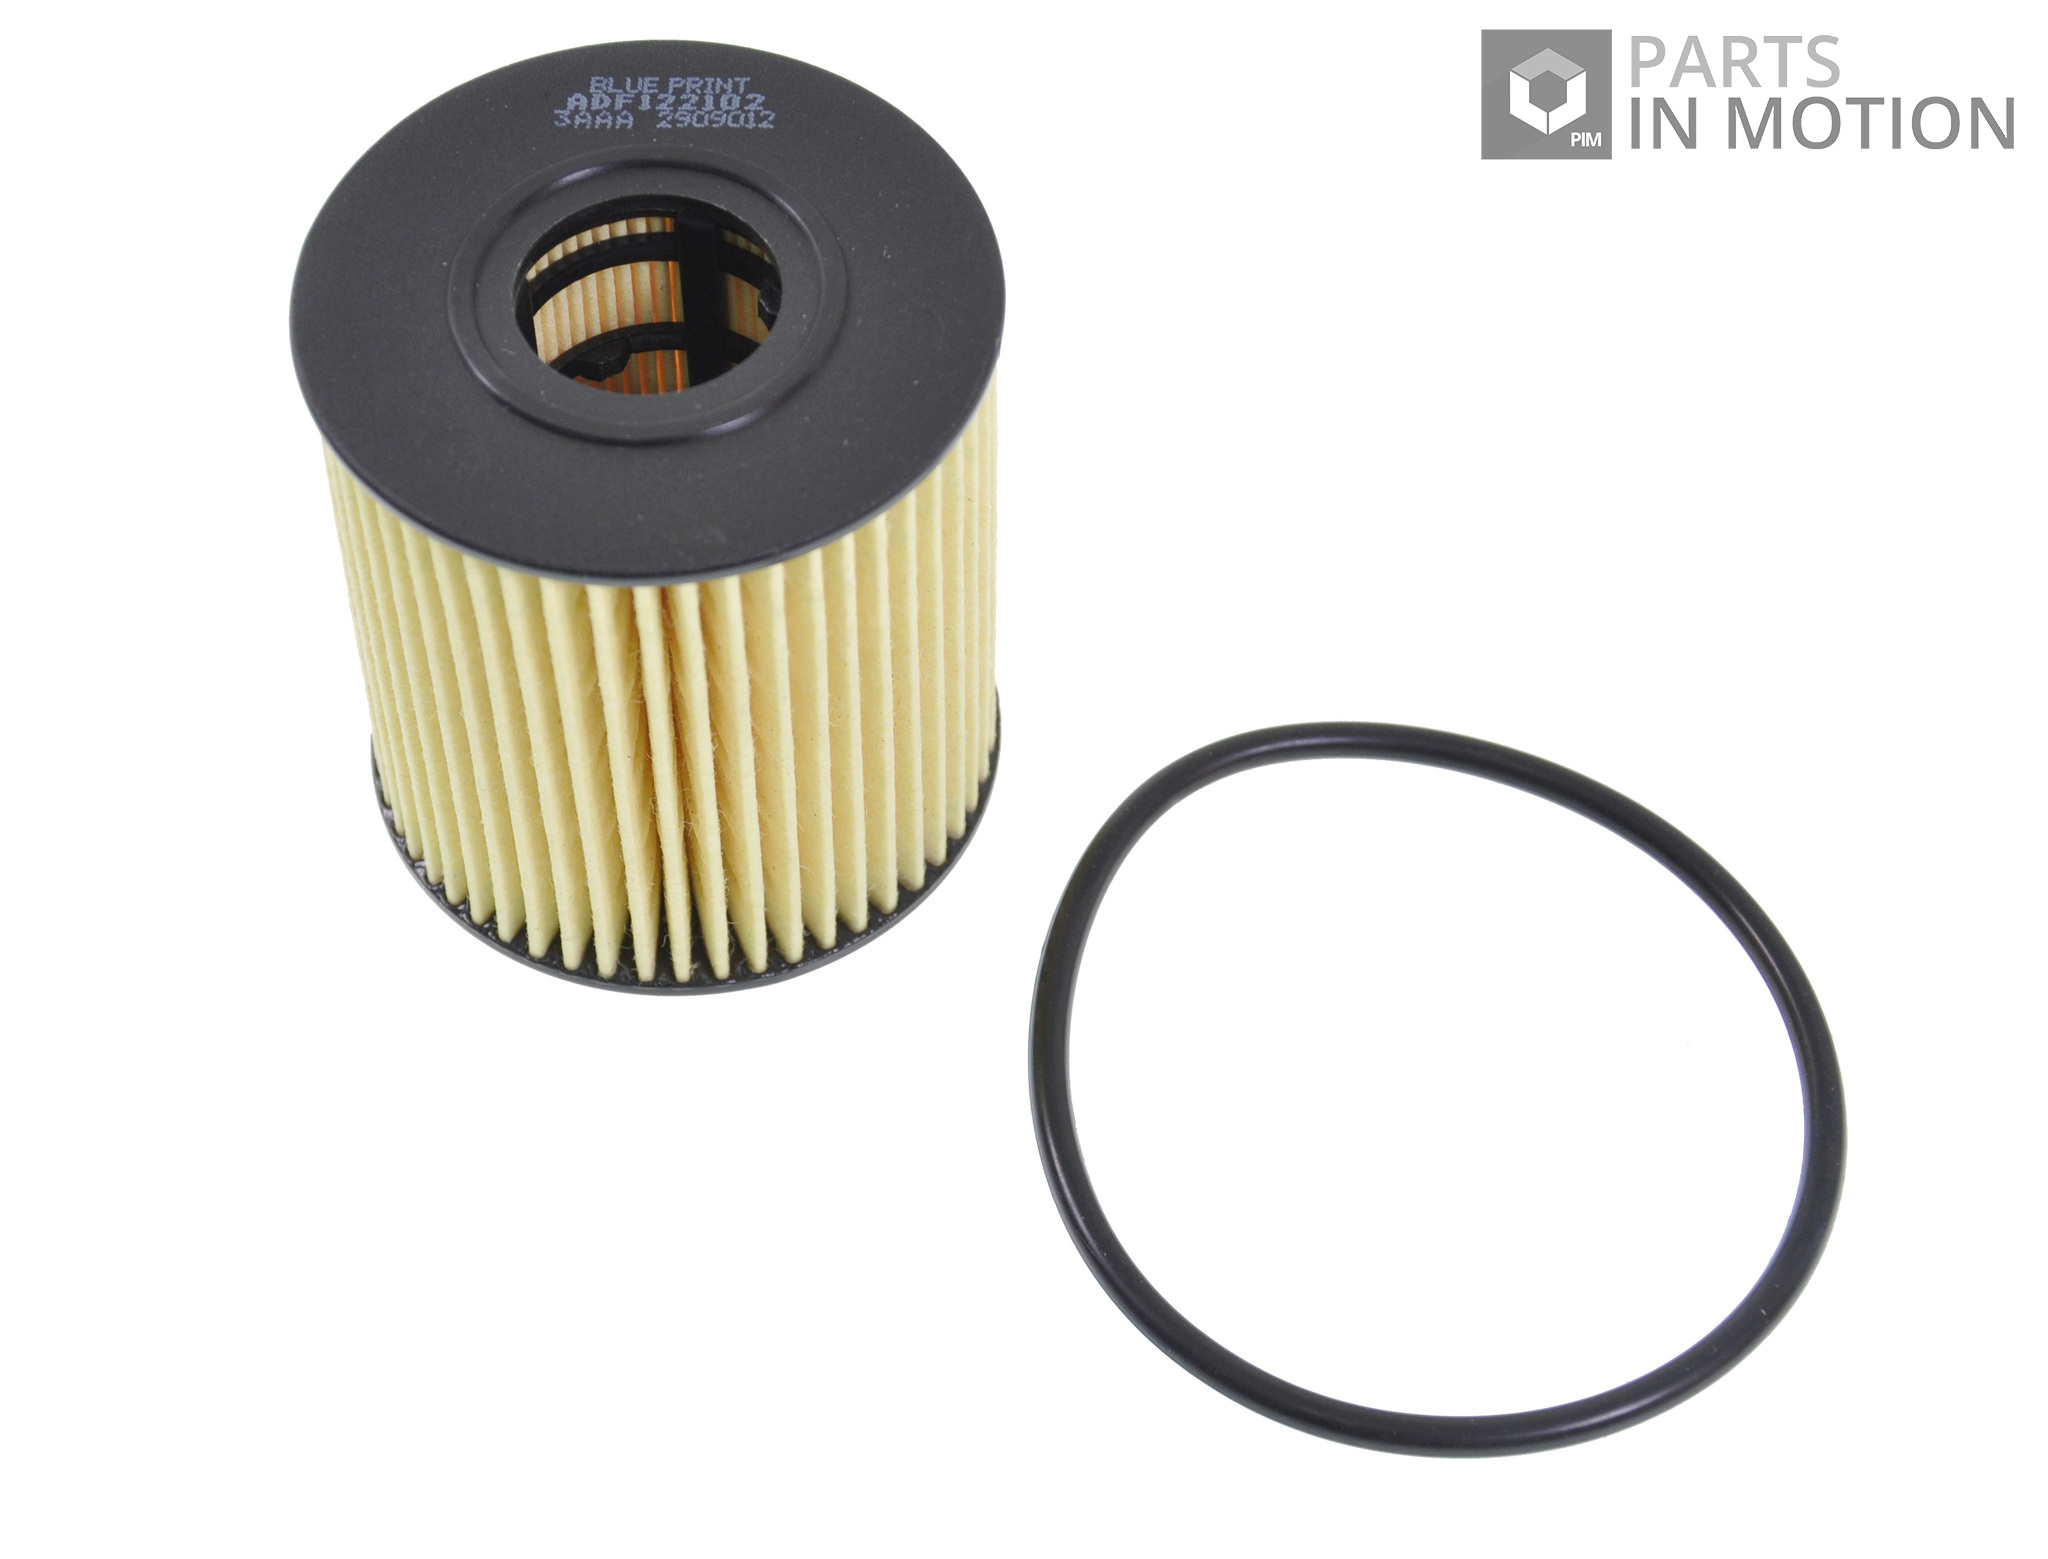 Citroen Relay 2.2 HDI Genuine Comline Oil Filter OE Quality Service Replacement